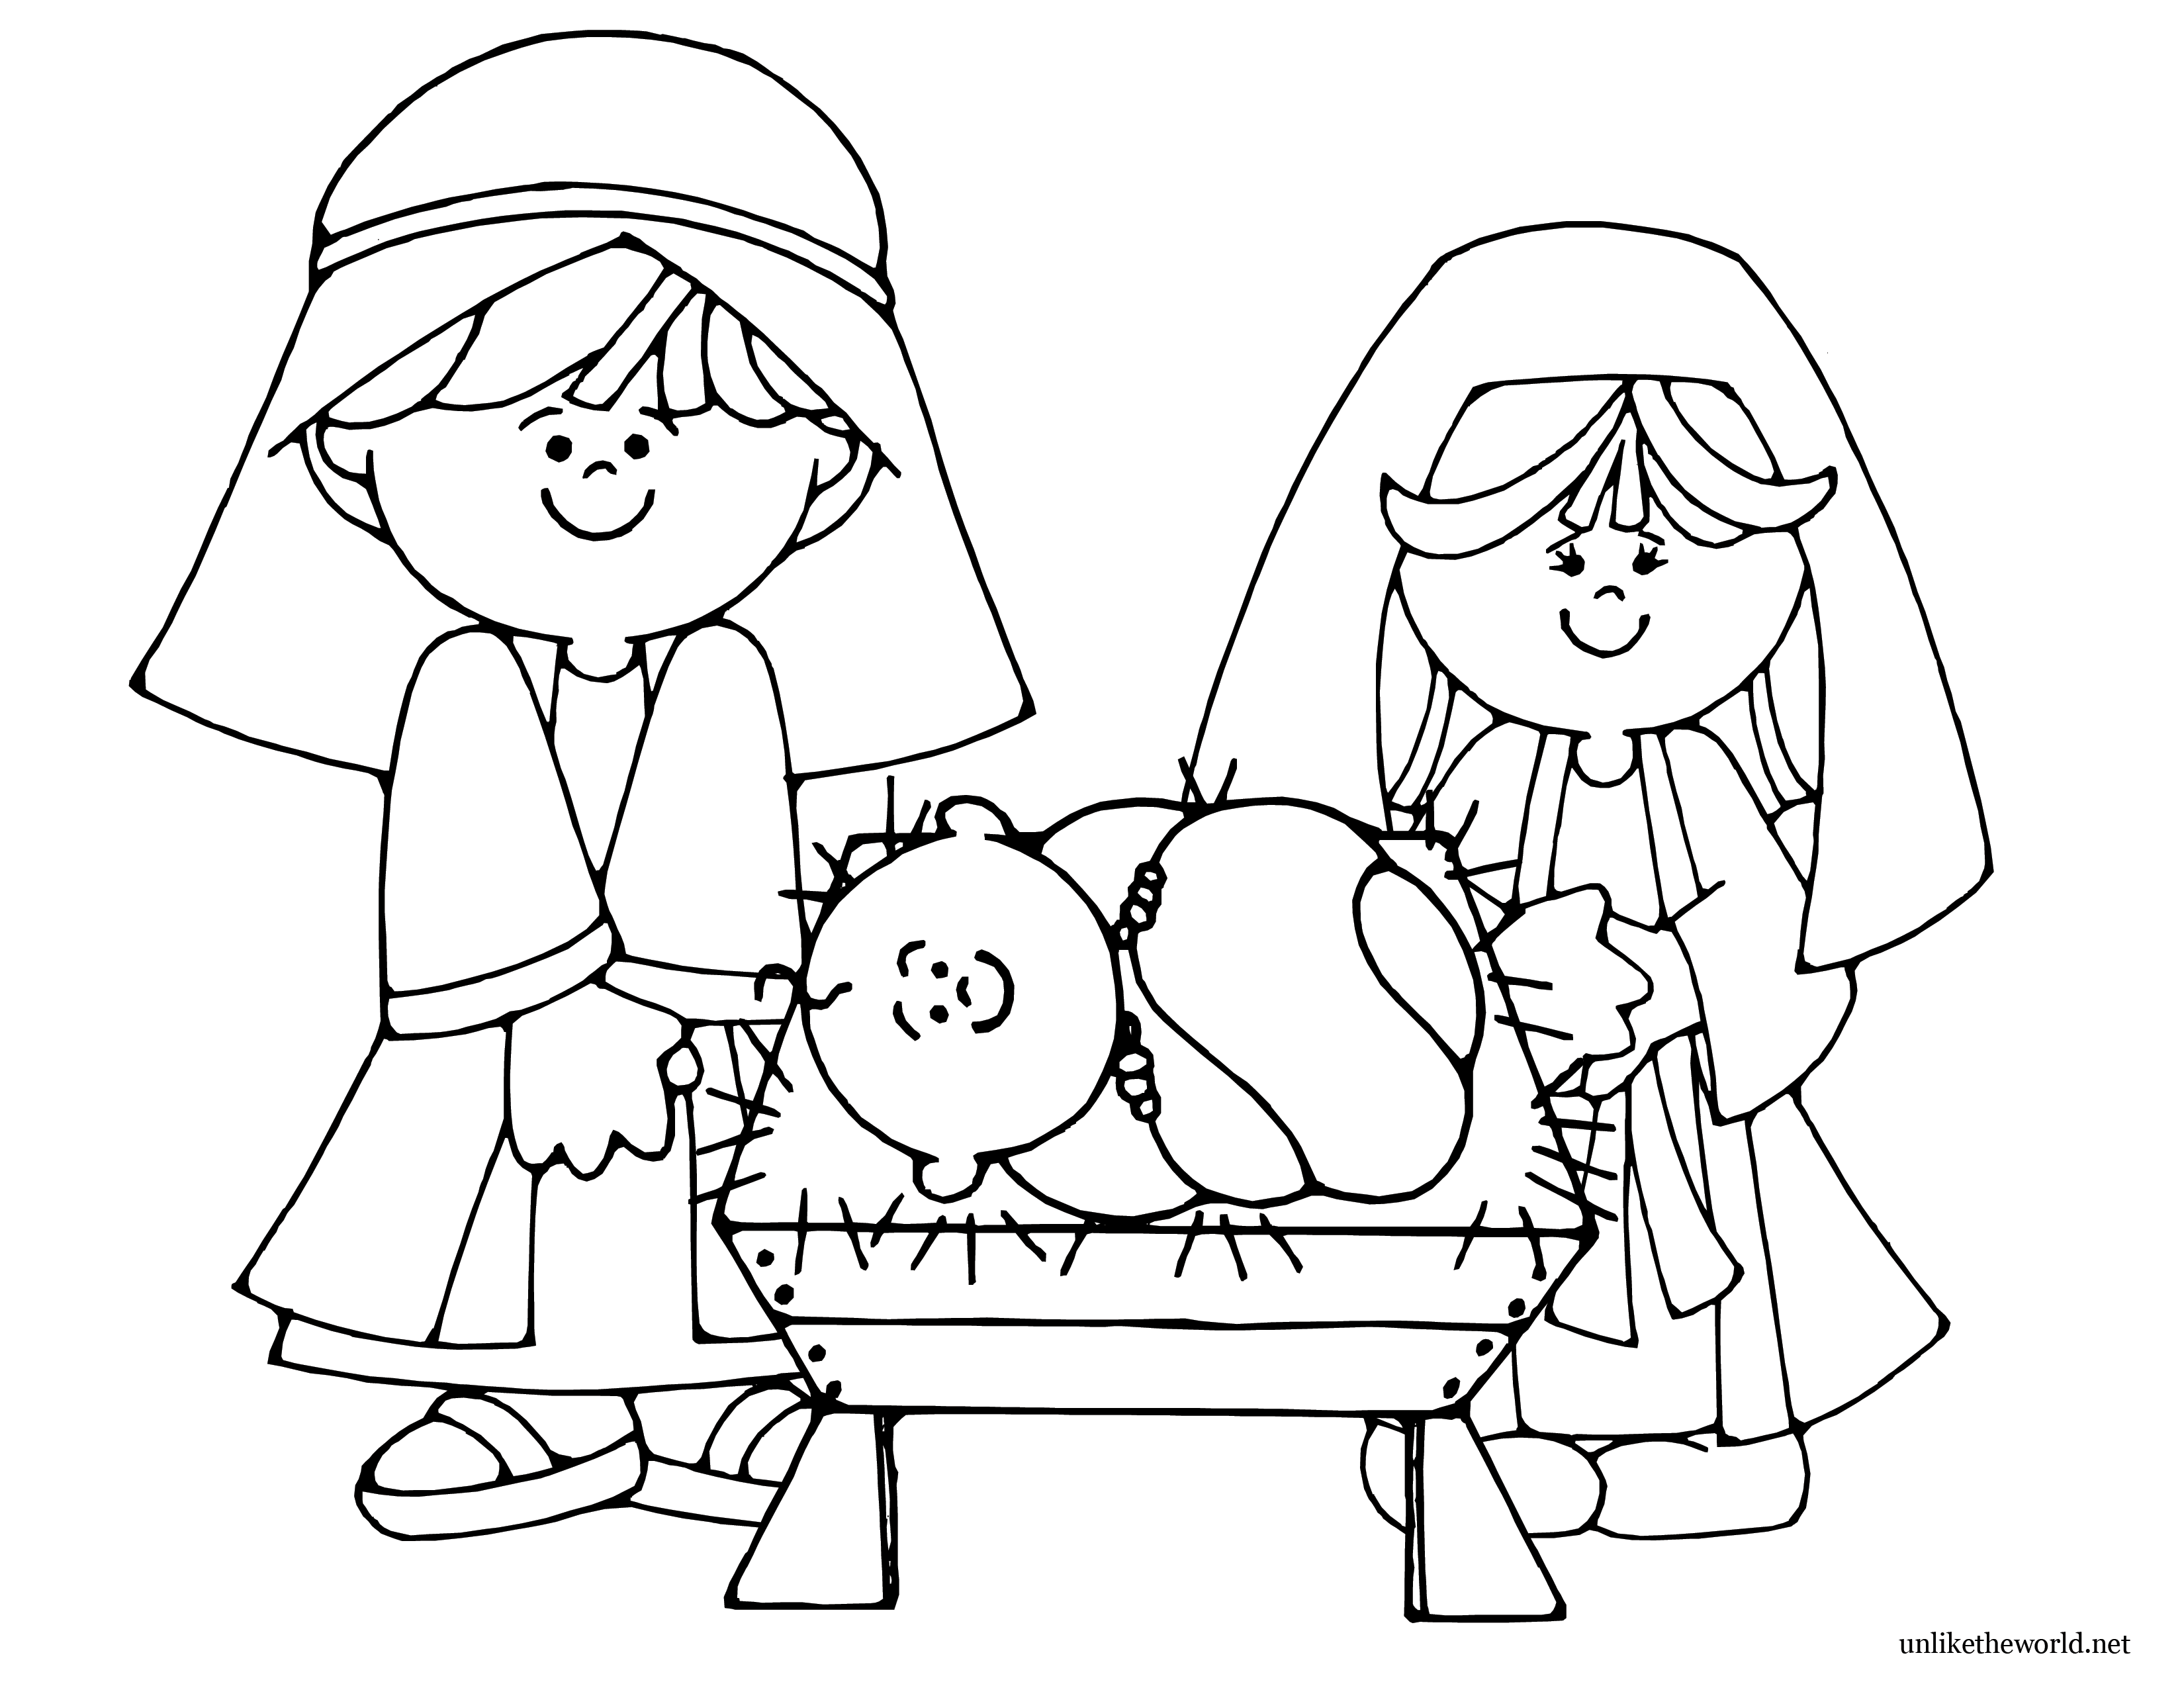 coloring scenes for kids jungle coloring pages best coloring pages for kids kids for coloring scenes